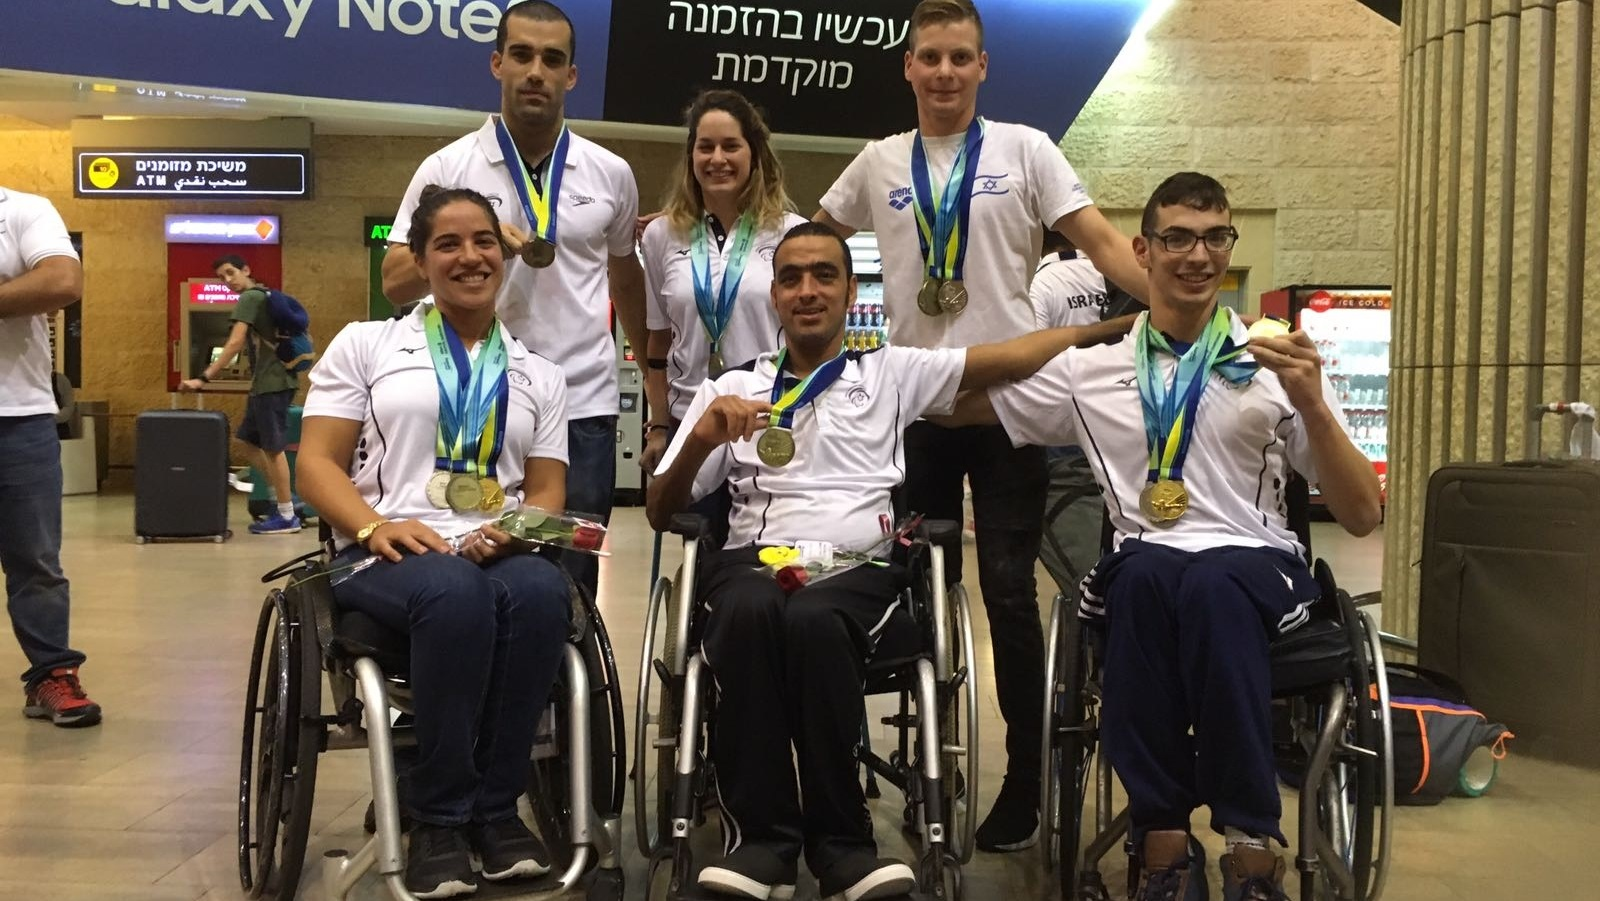 Israeli Paralympic swimmers win 3 gold, 4 silver, 5 bronze